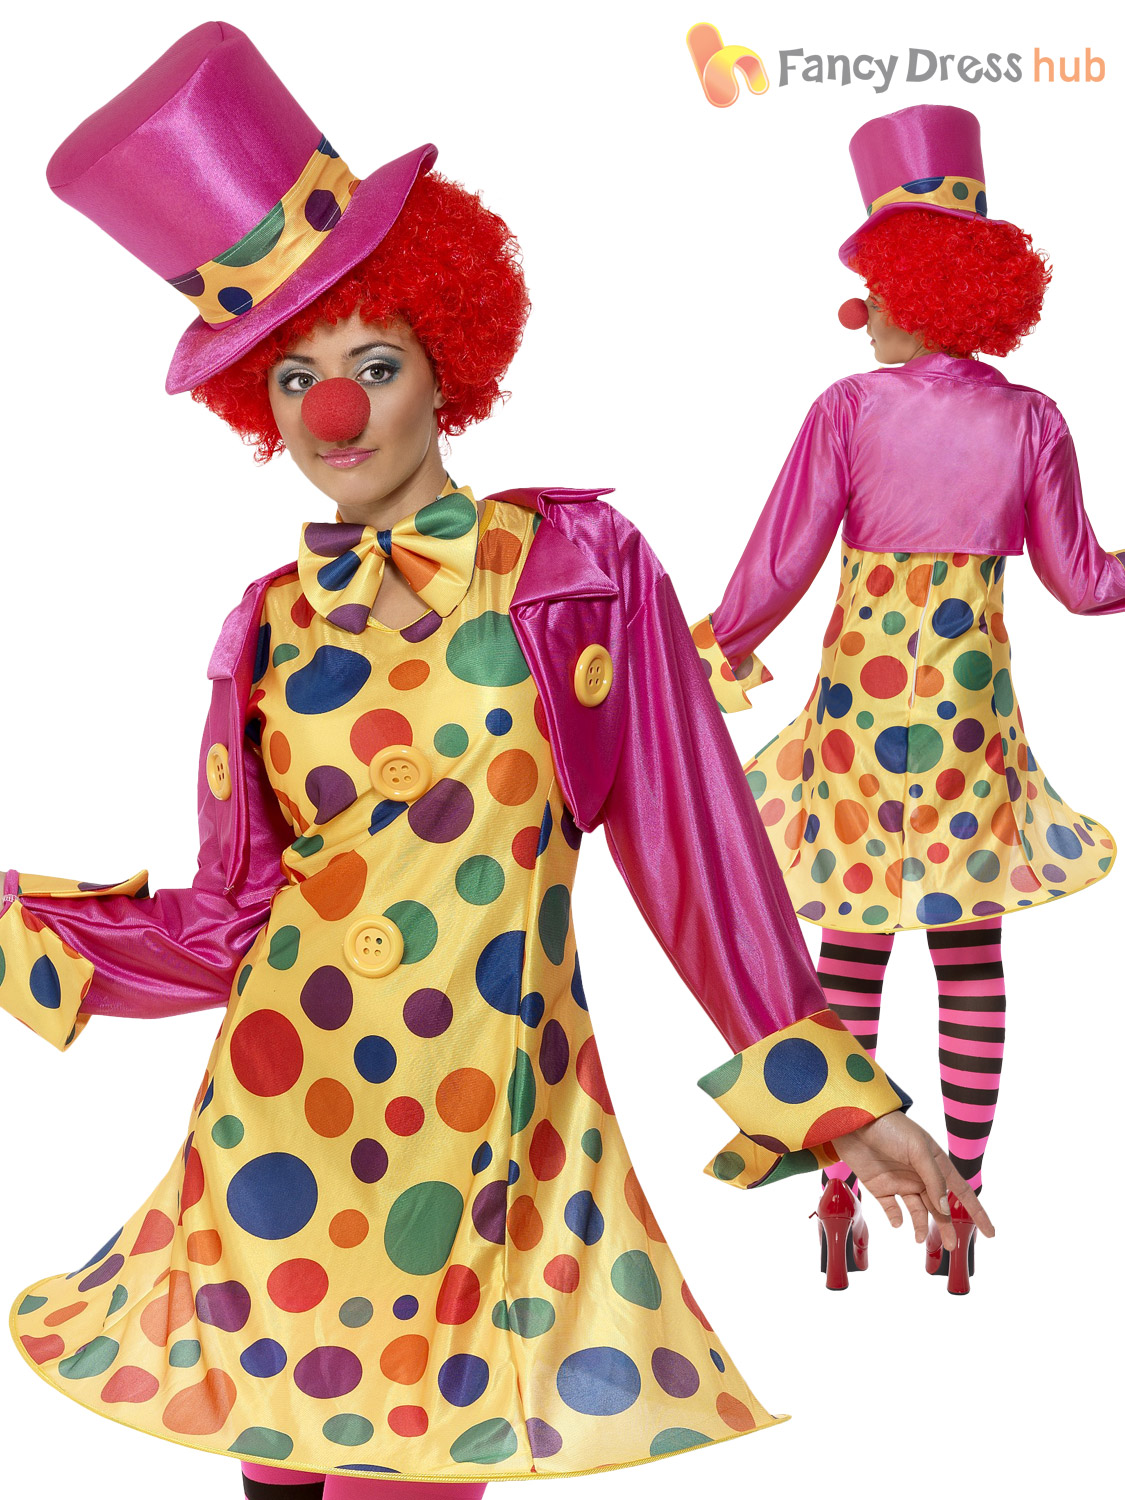 circus fancy dress costumes por Atacado em Lotes de circus fancy dress costumes Baratos, Compre de Atacadistas de circus fancy dress costumes Confiáveis.